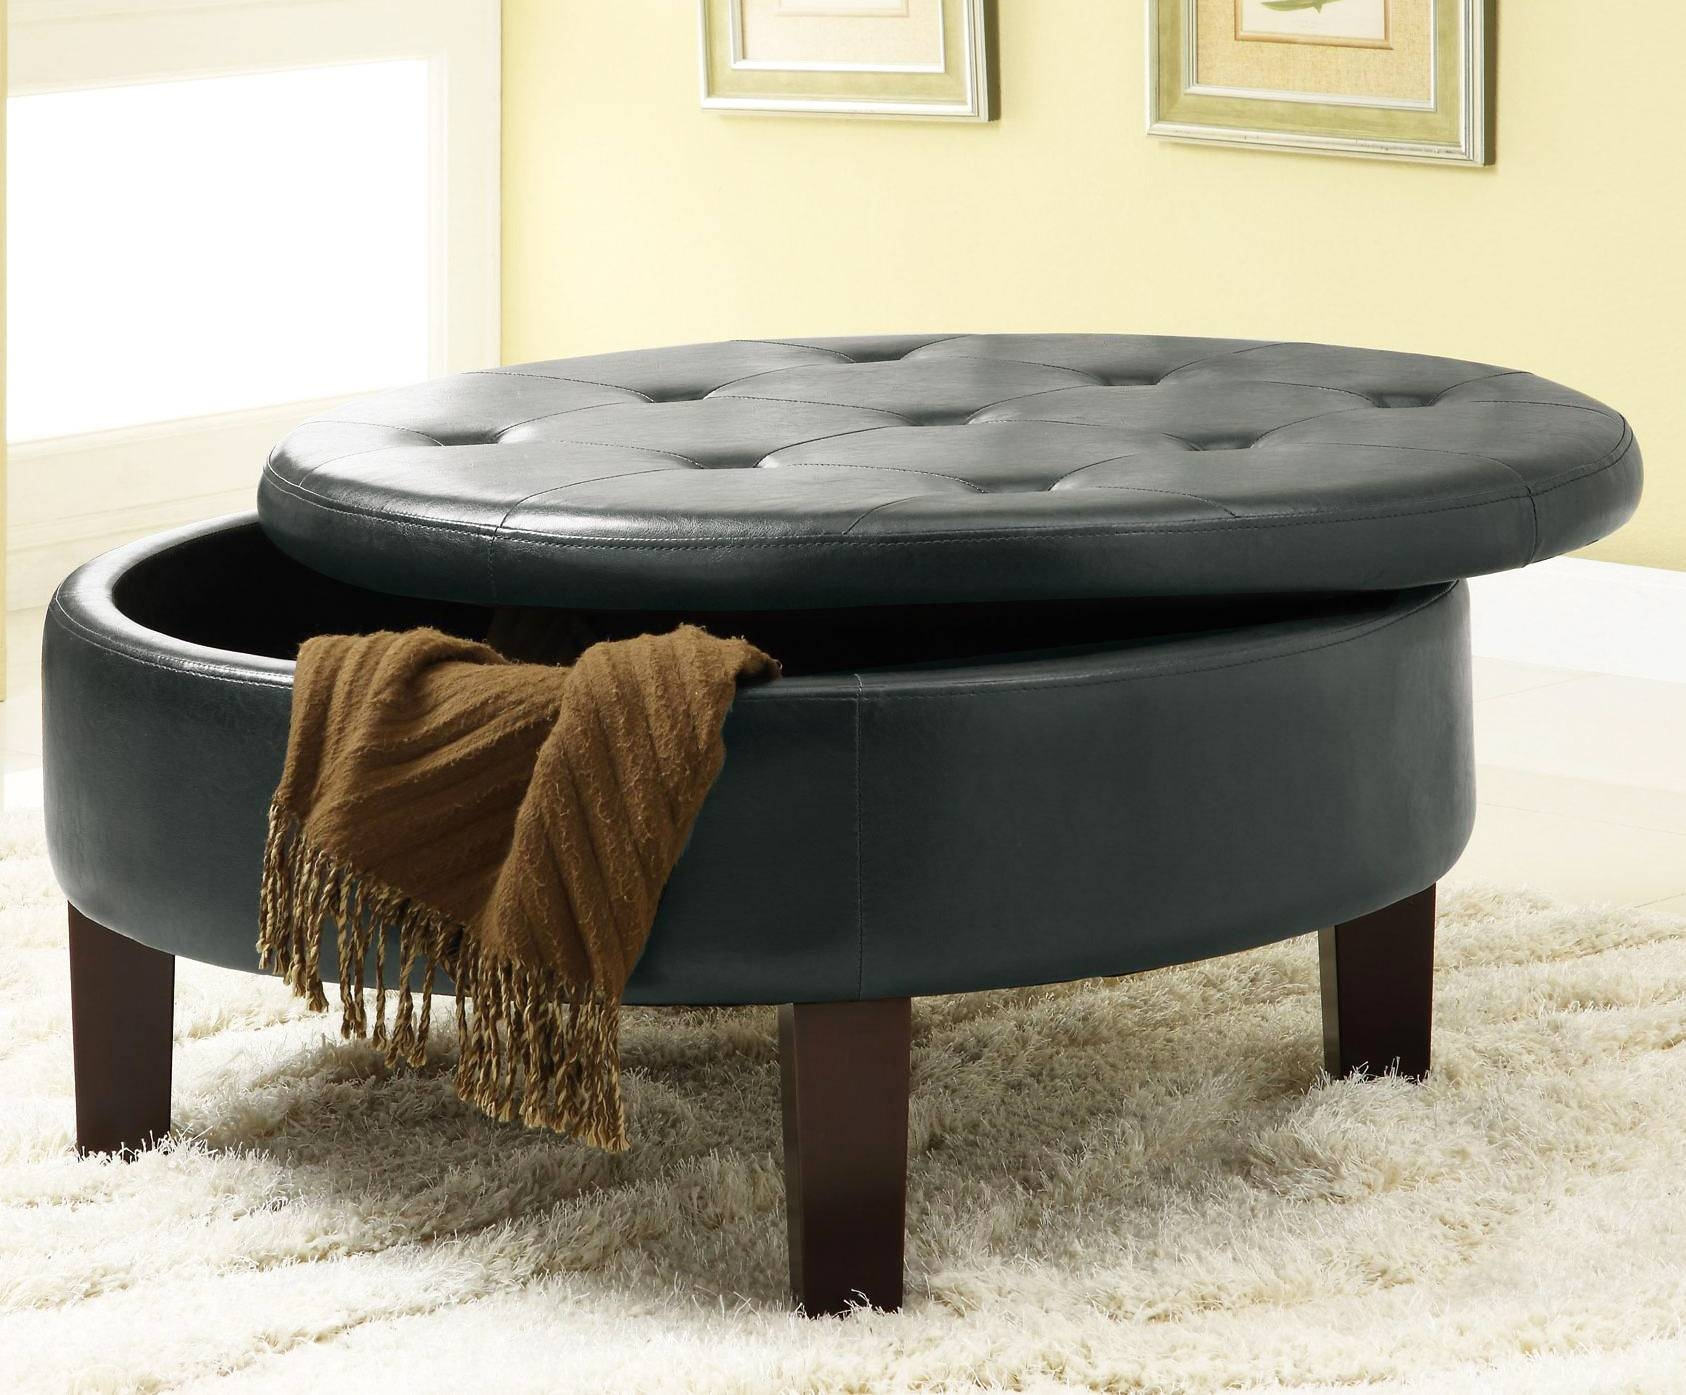 Tufted Coffee Table For Elegance, Creativity And Luxury | Roy Home pertaining to Round Upholstered Coffee Tables (Image 26 of 30)